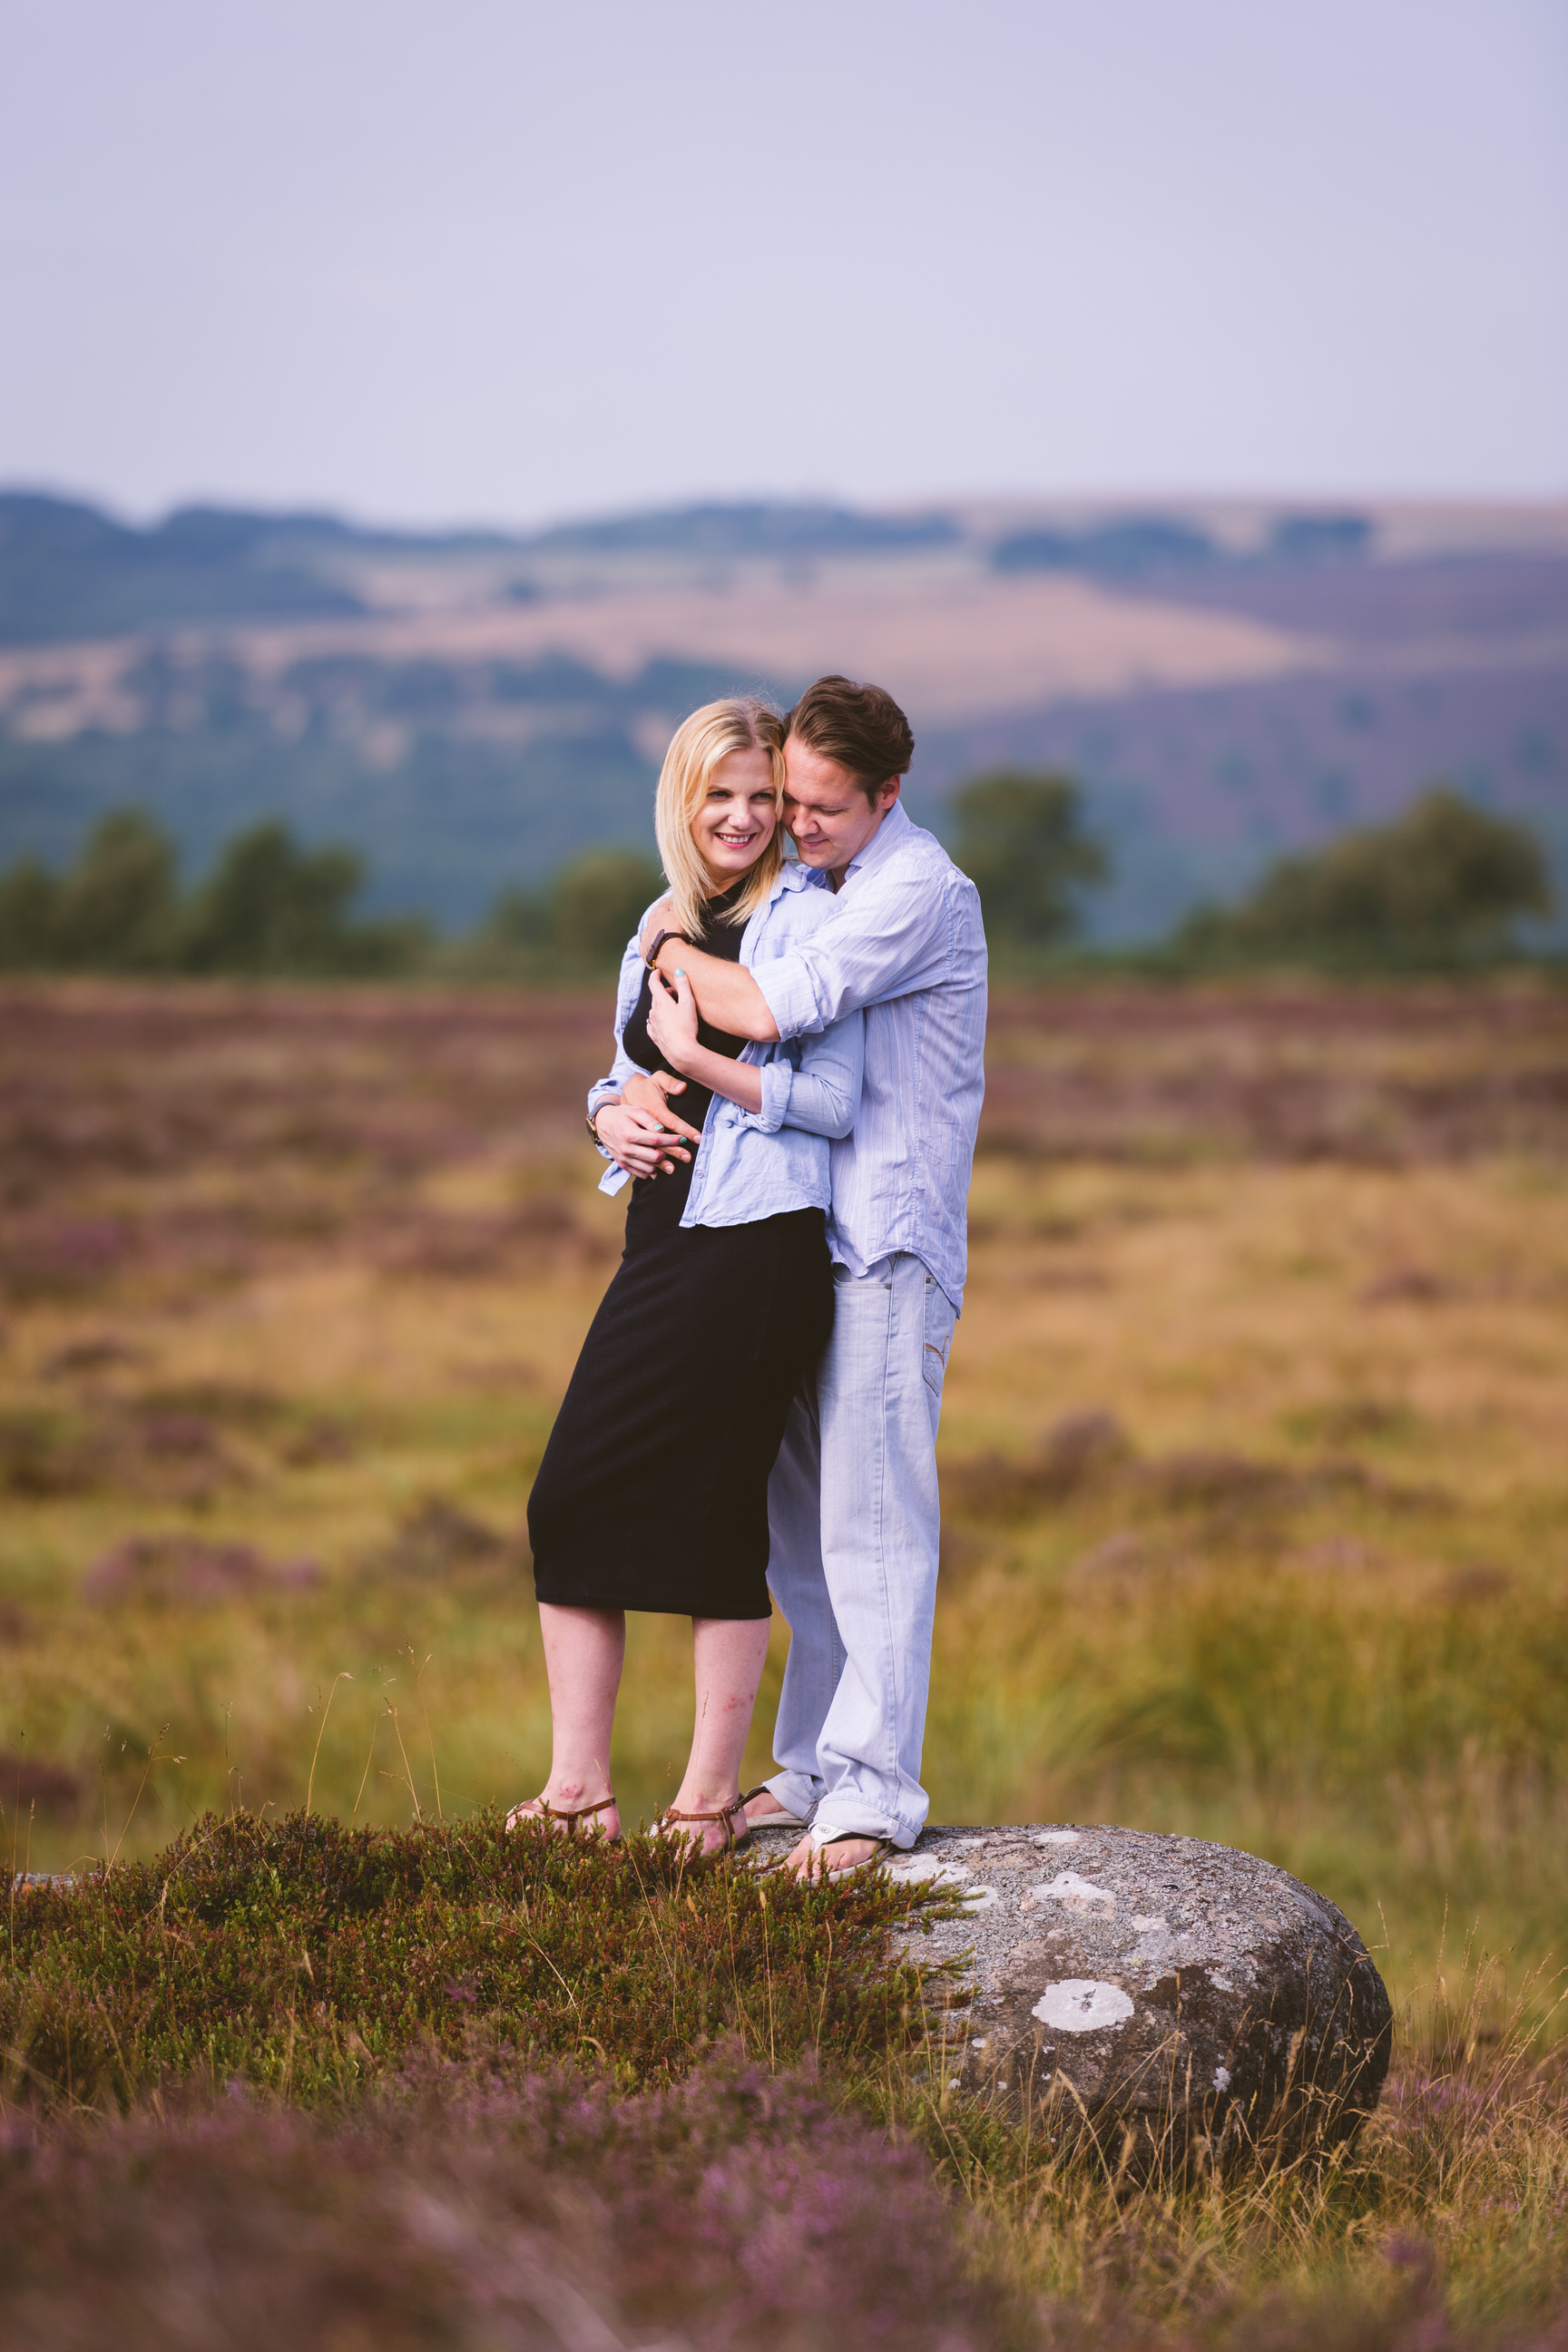 leeds-and-yorkshire-engagement-photographer-14.jpg